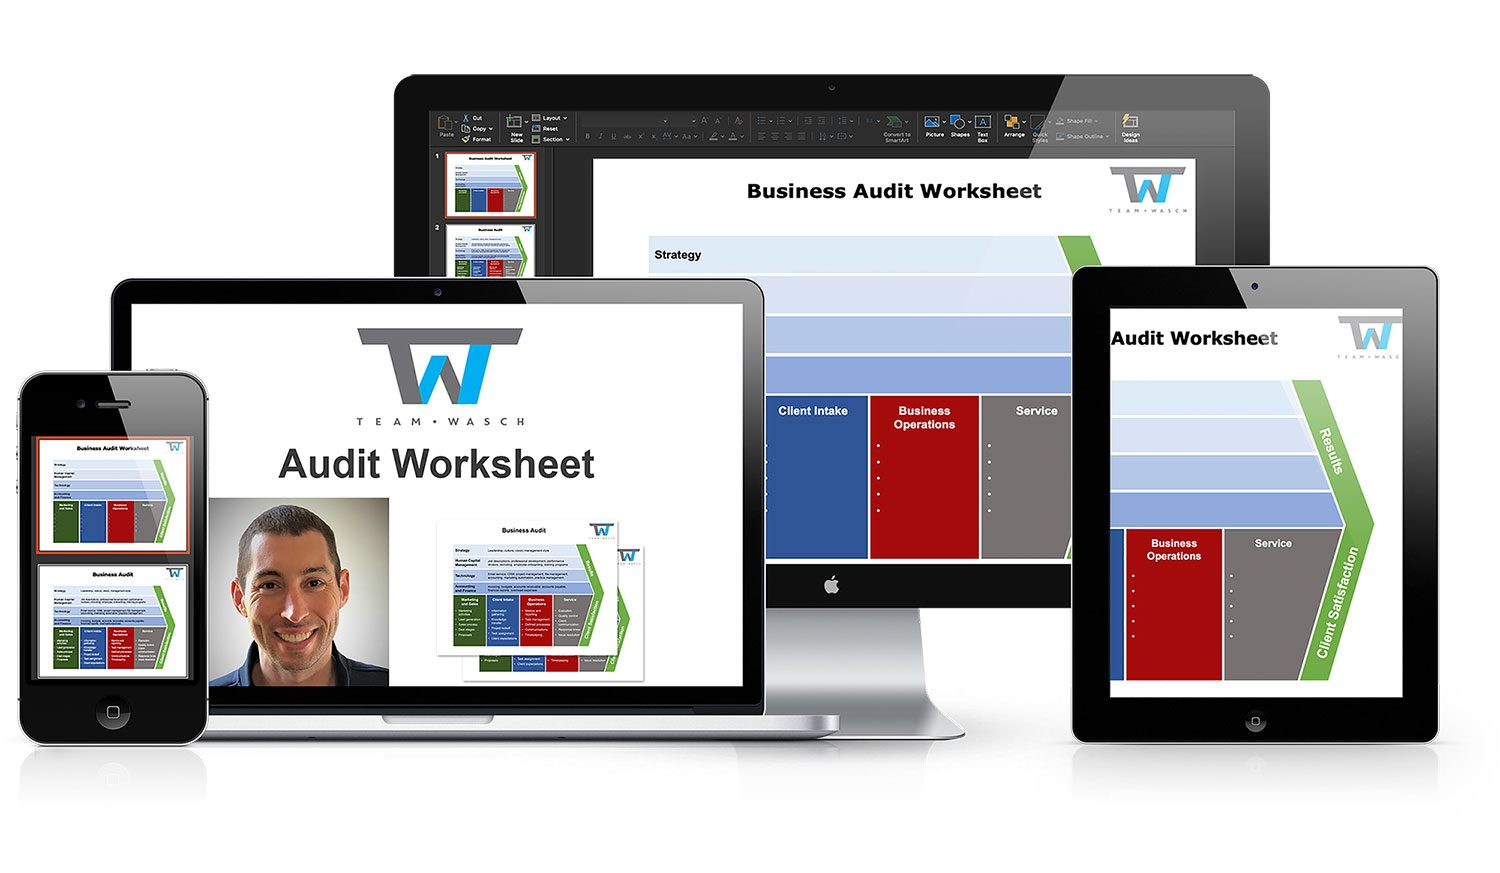 Business Audit Worksheet